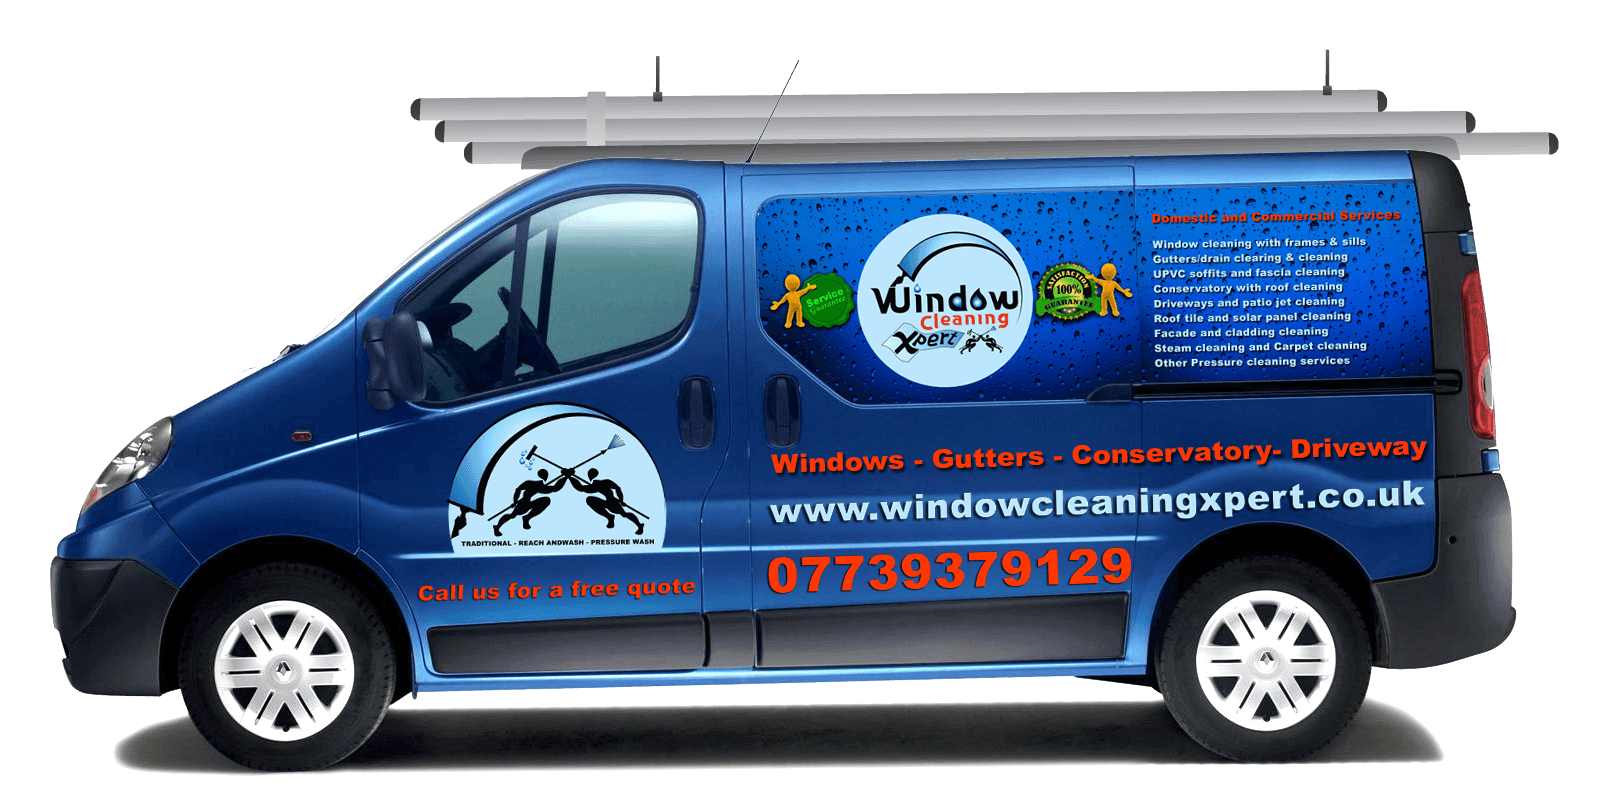 Window Decal And Car Sign Design For Businesses In Leicester - Car window decals for business uk